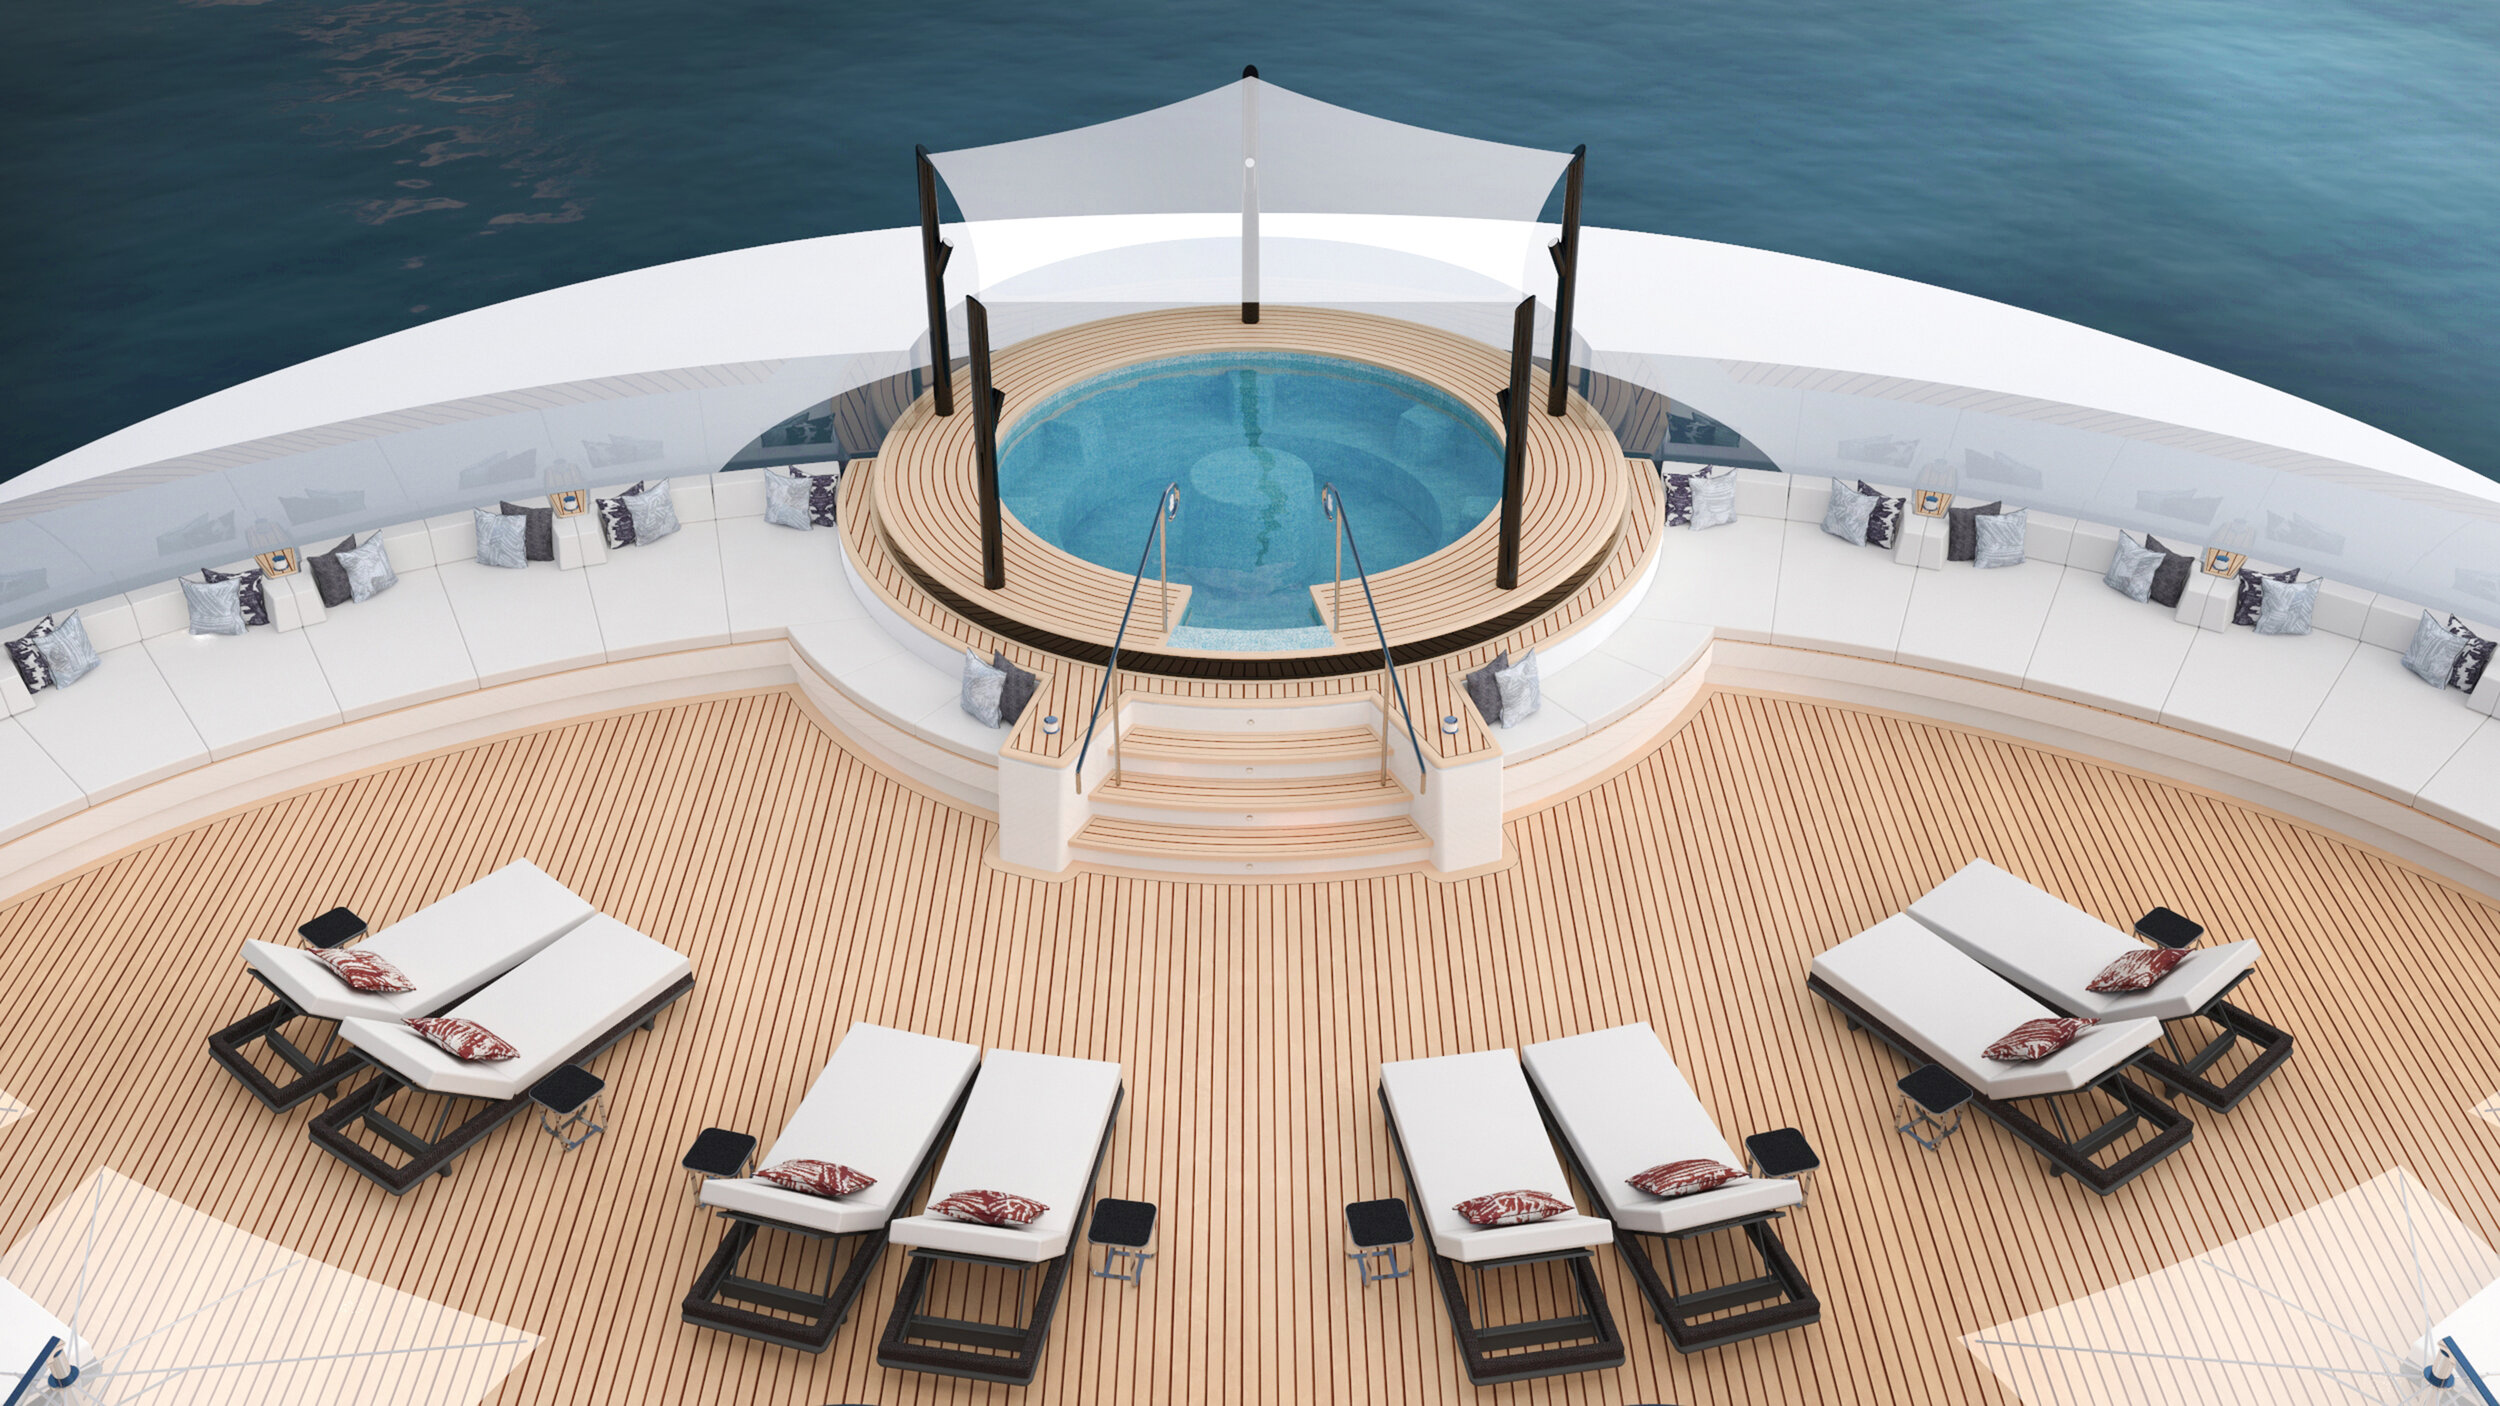 Each yacht will offer signature spa services aboard the vessel.